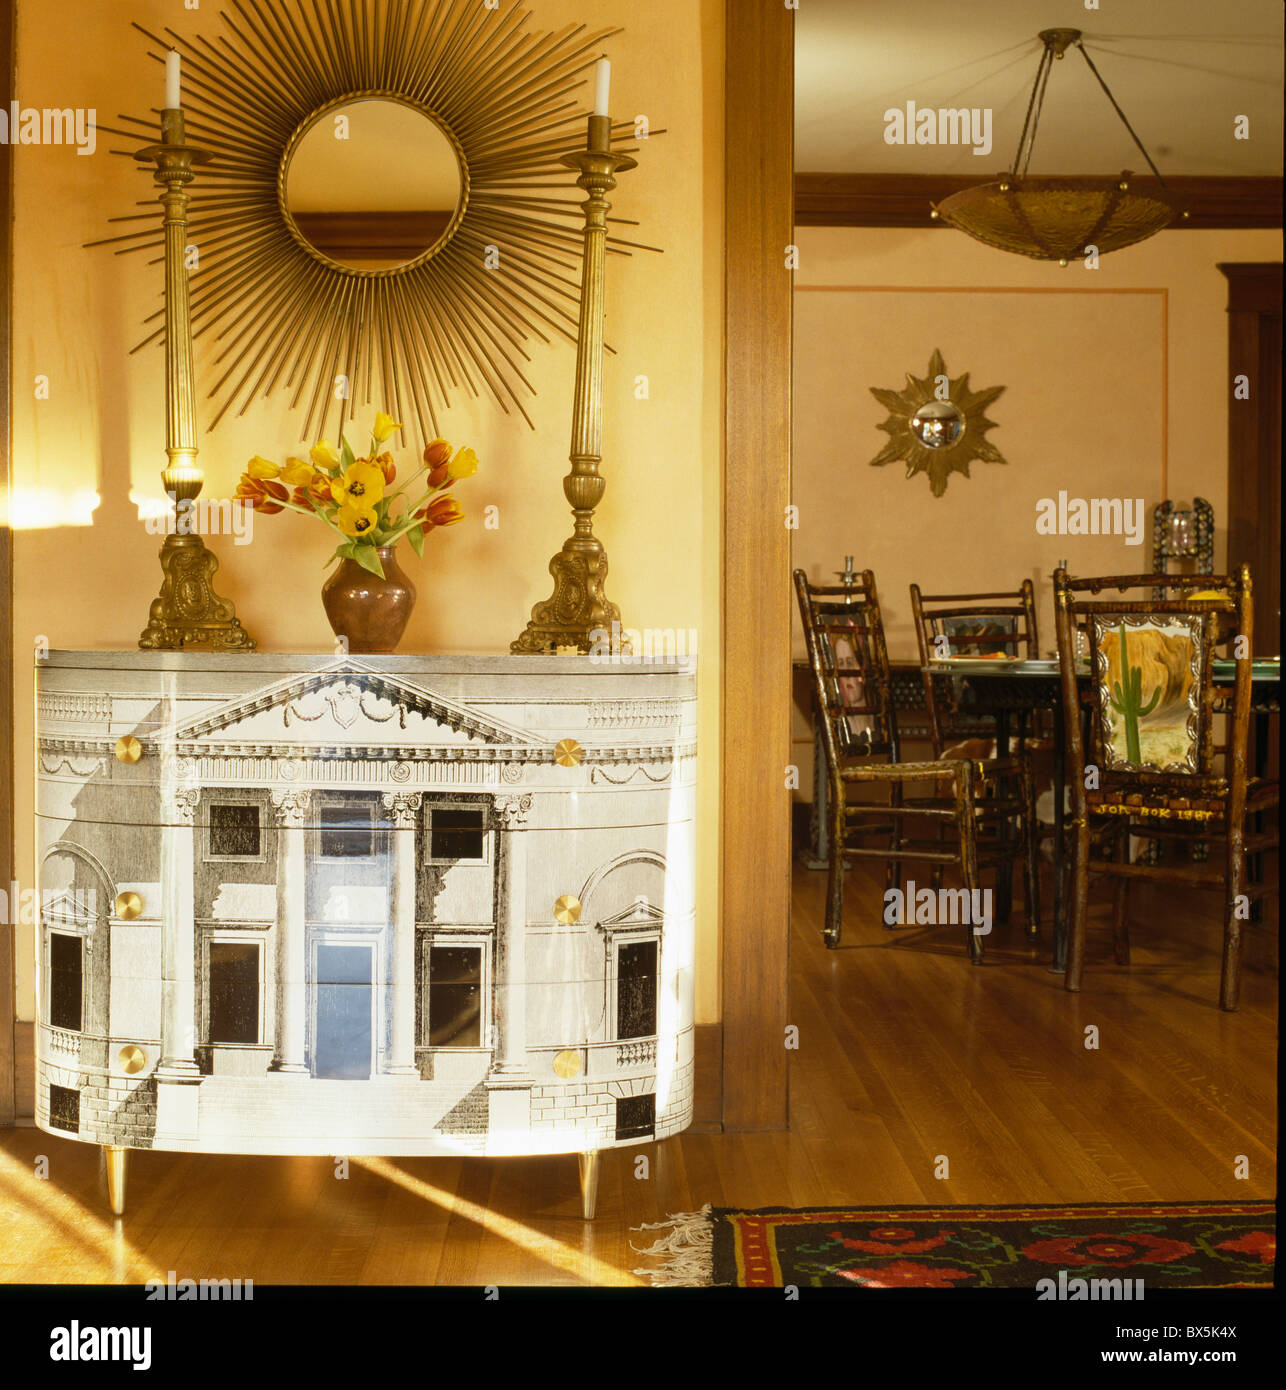 Gold sunburst mirror above Fornasetti cabinet table painted to resemble a Palladian house in townhouse dining room - Stock Image